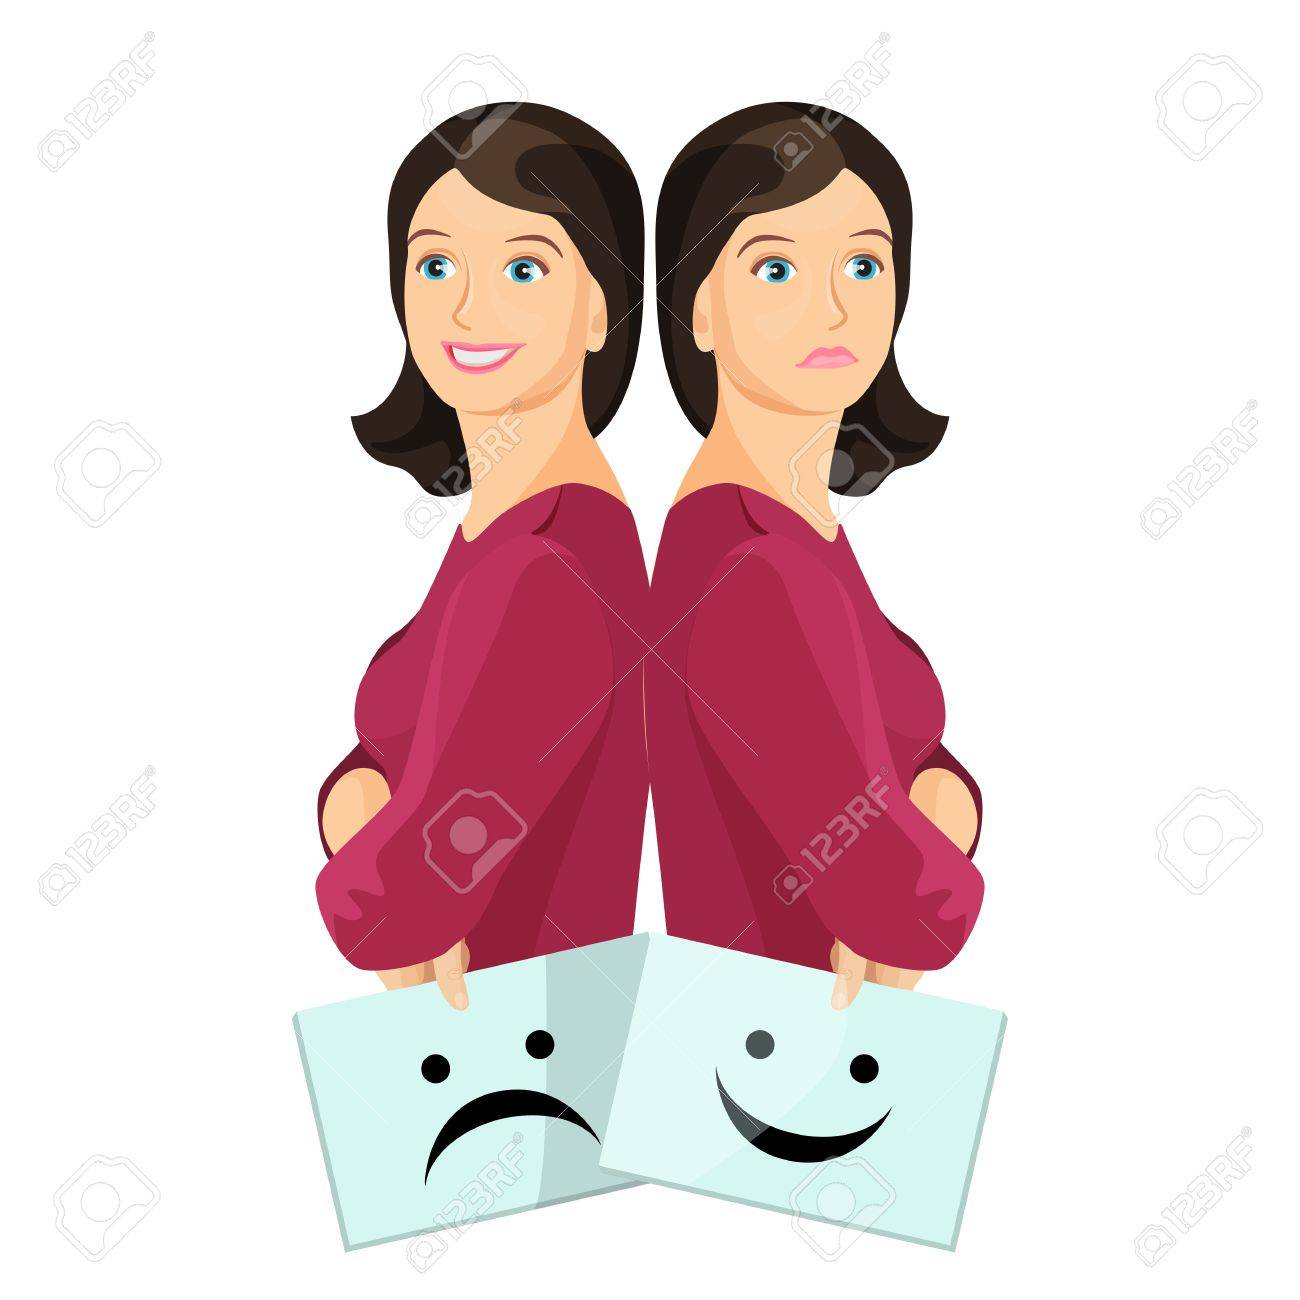 Bipolar woman smiling and upset holding paper with smiley - 77405179